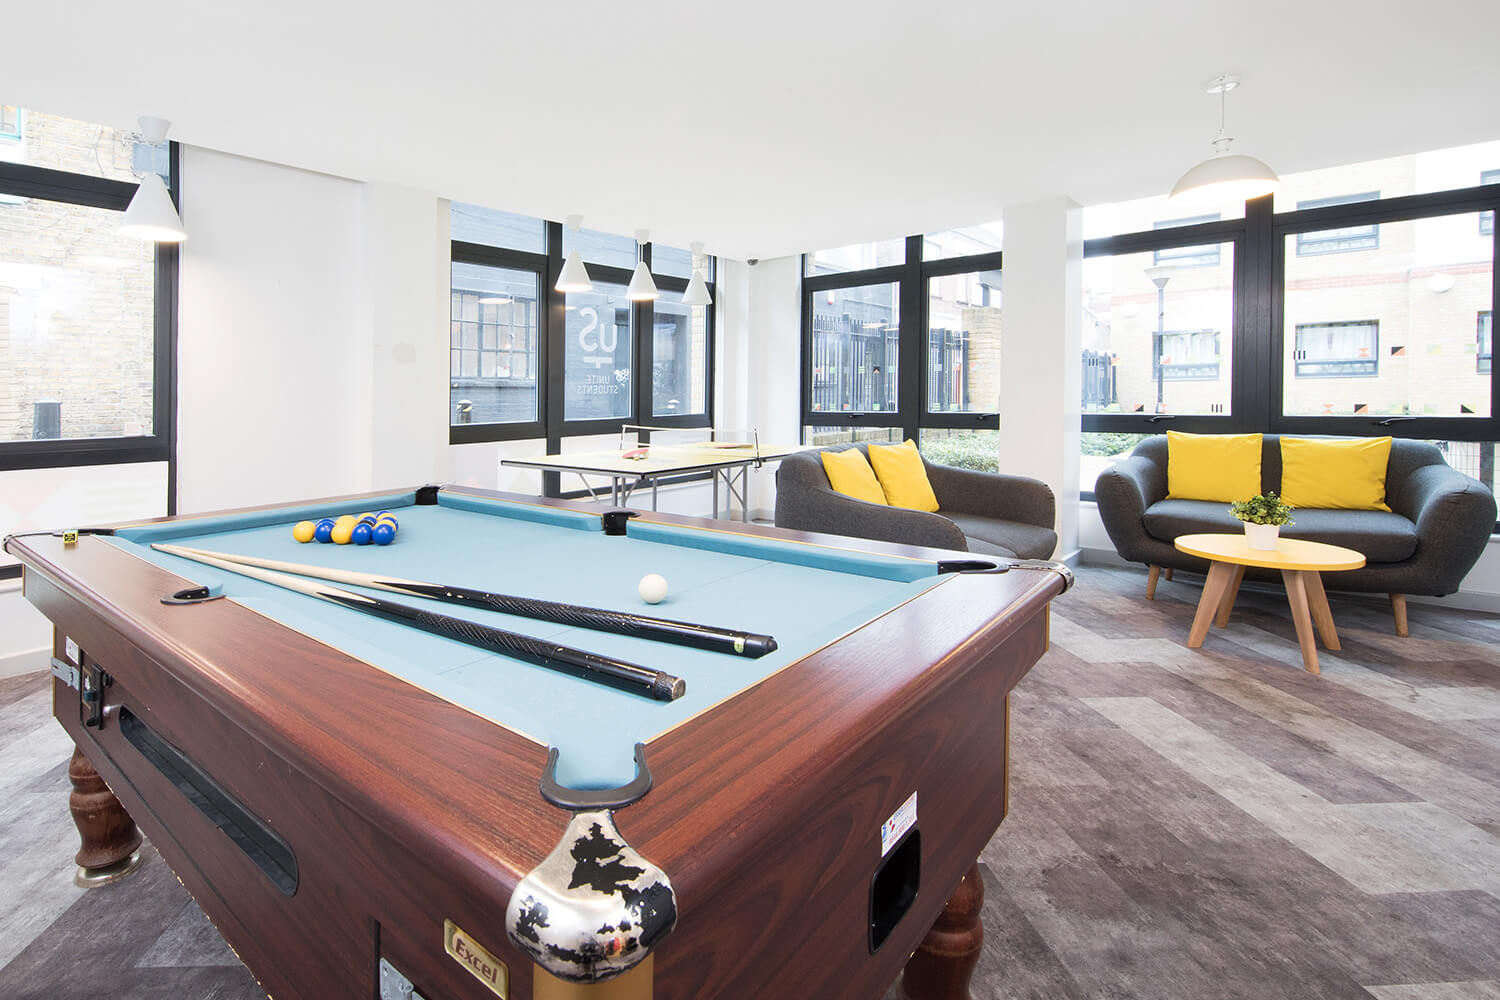 Student accommodation London pool table and sofas in common room at Pacific Court